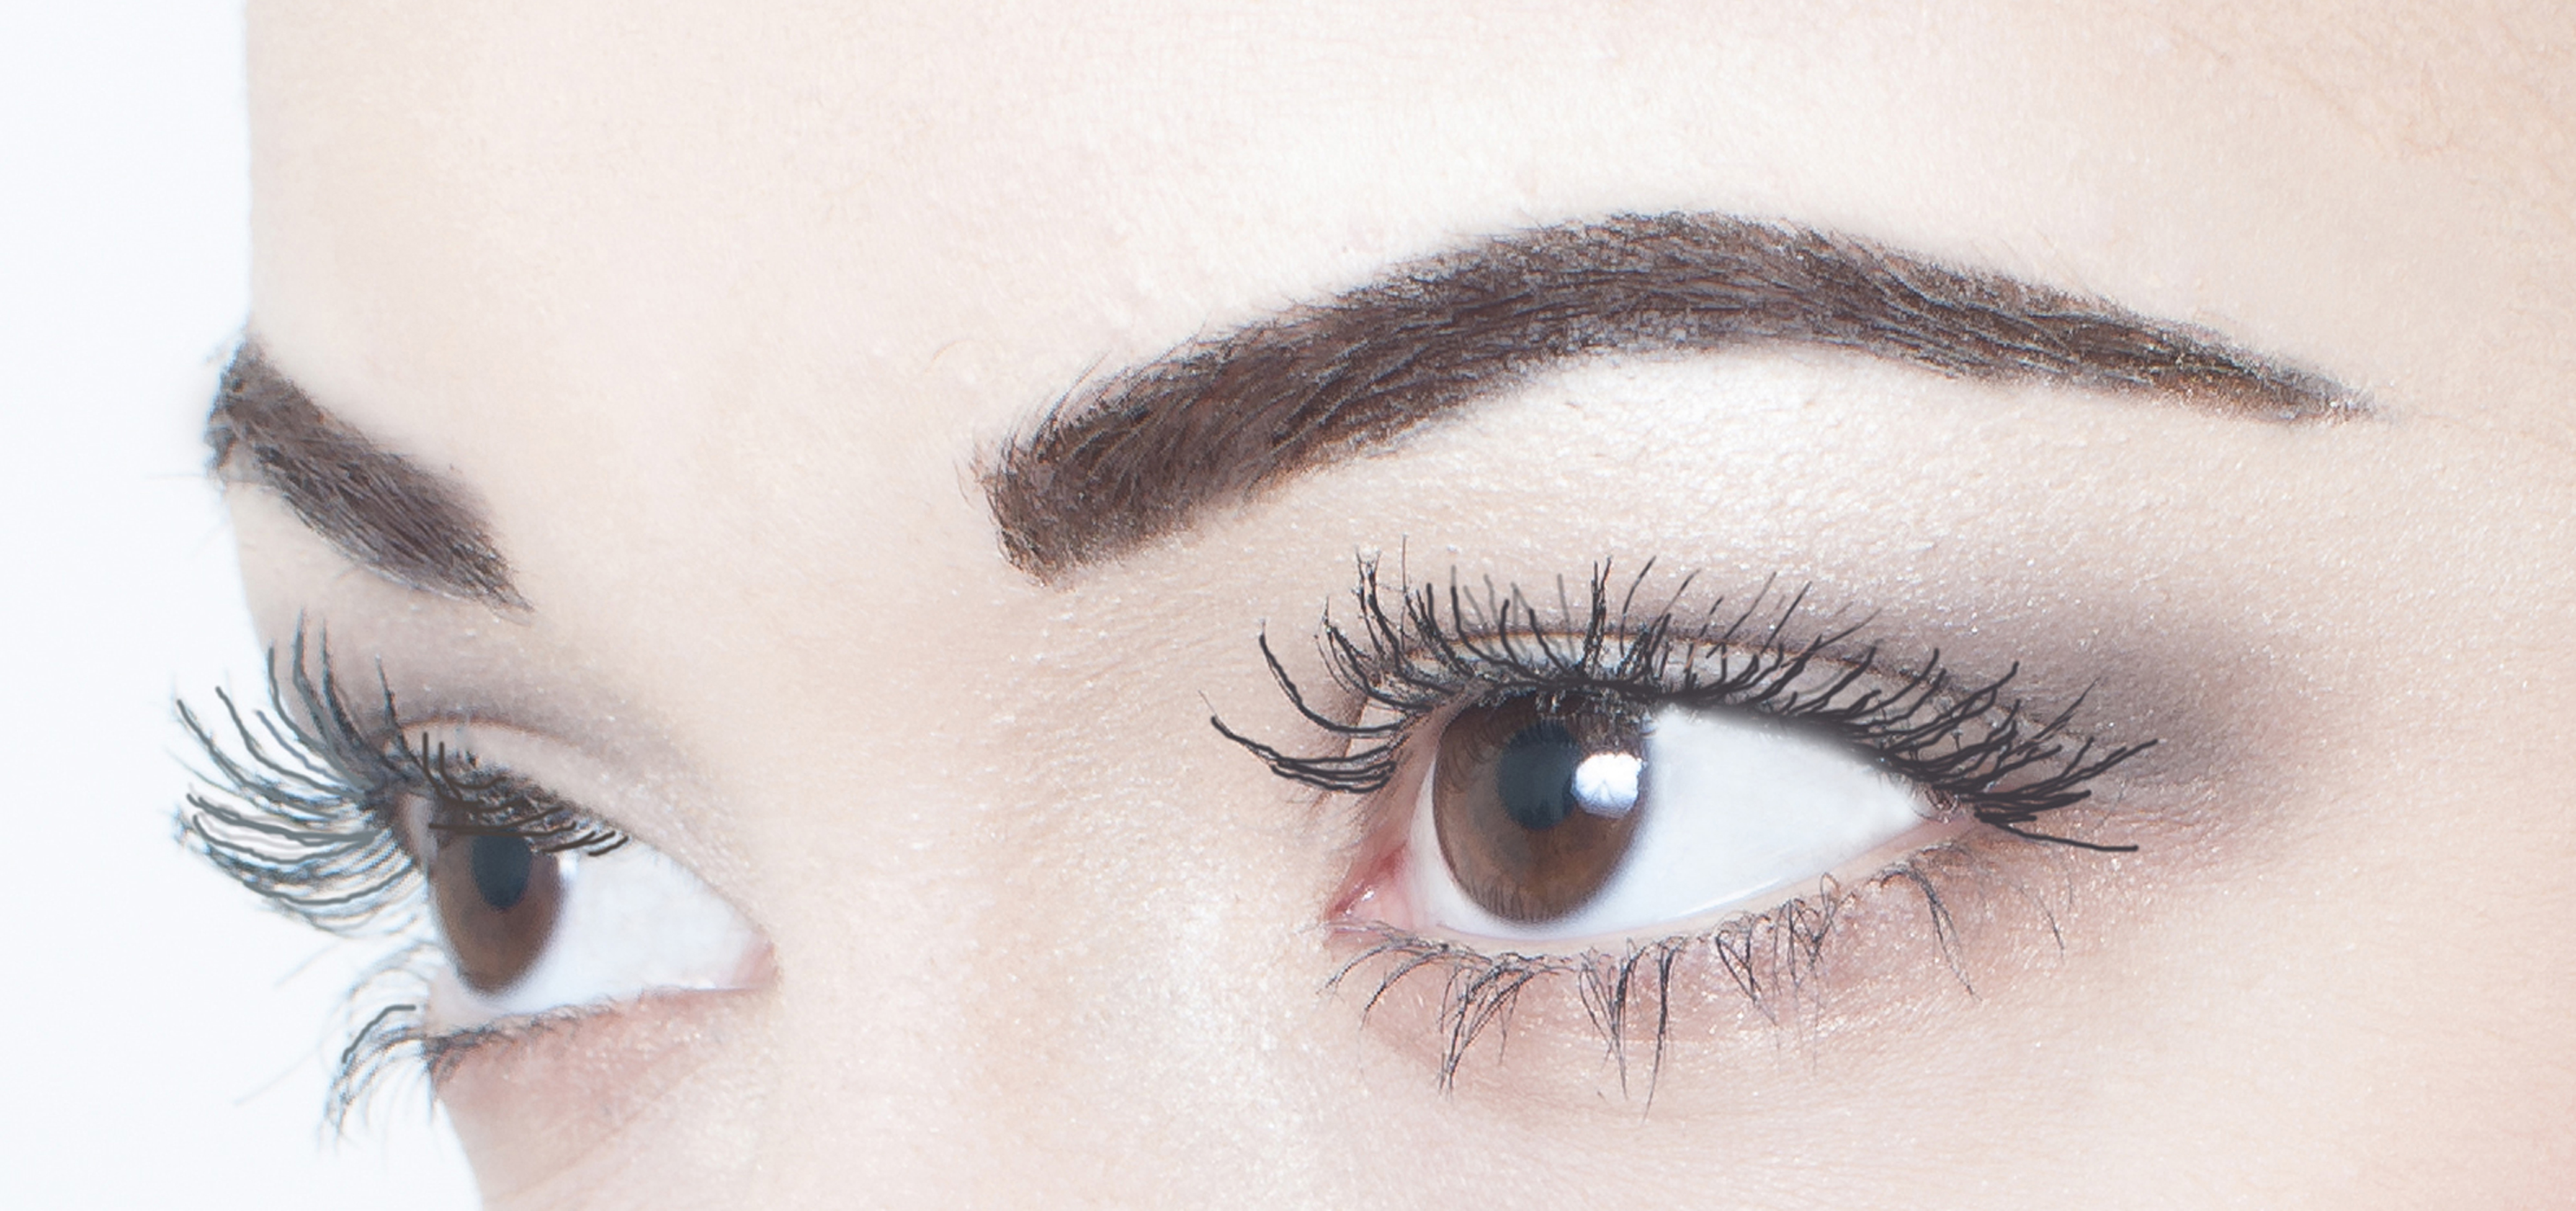 Eyebrow Courses giving a 3D effect using sculpting glaze and brow hairs